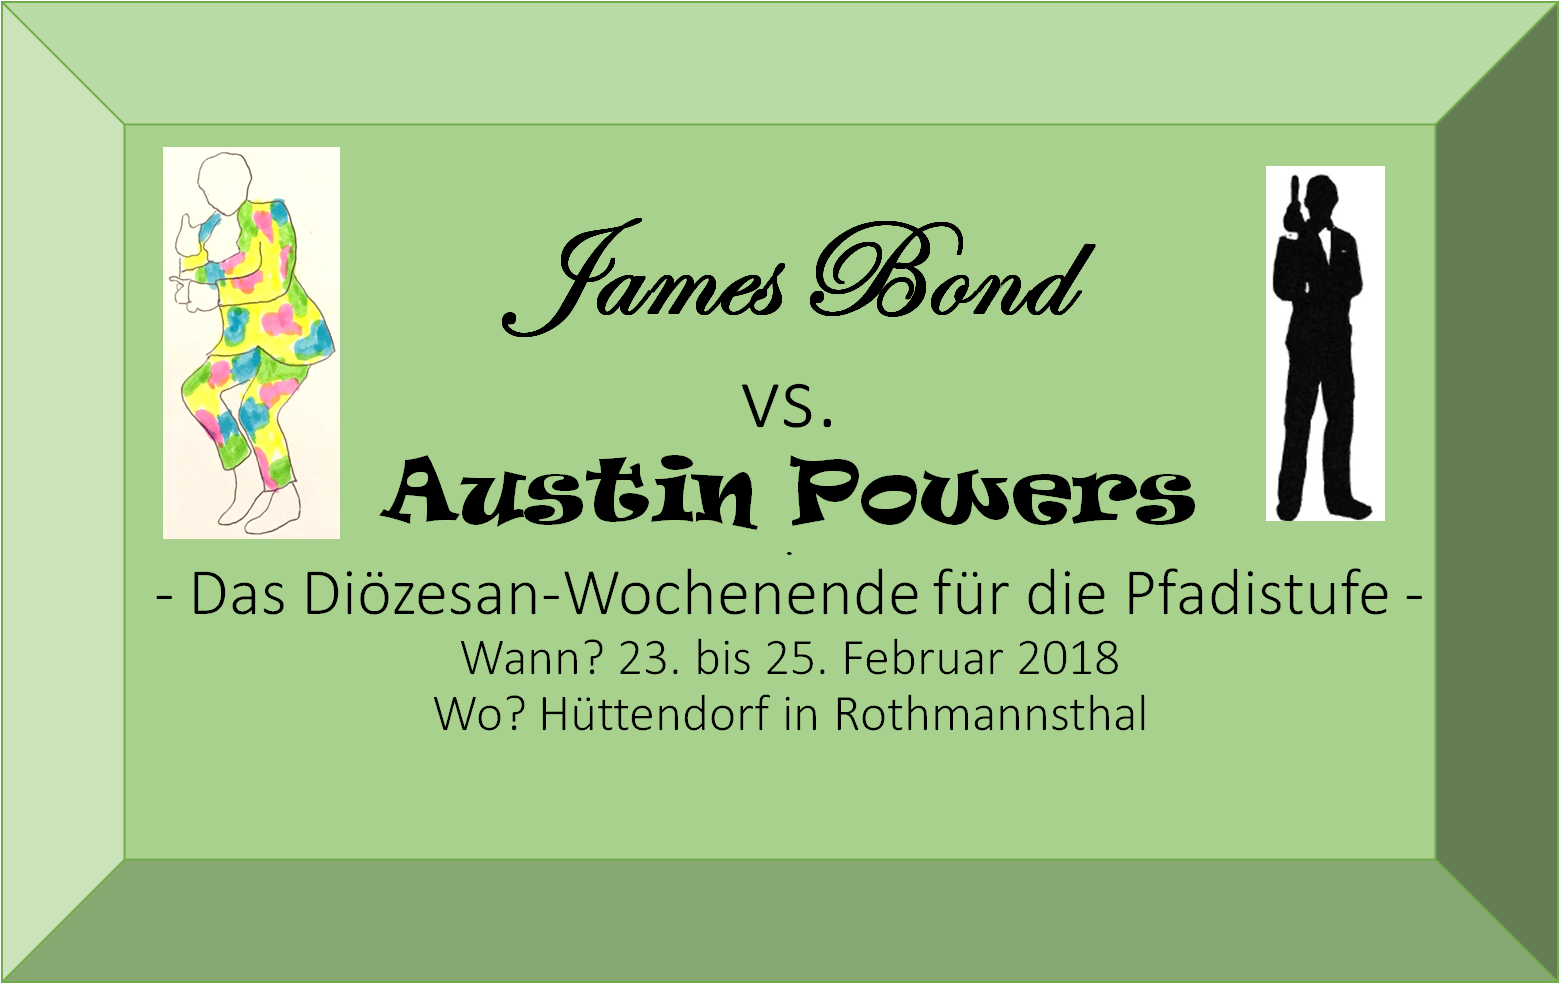 "Pfadi-Wochenende der Diözese Bamberg: ""James Bond vs. Austin Powers"""